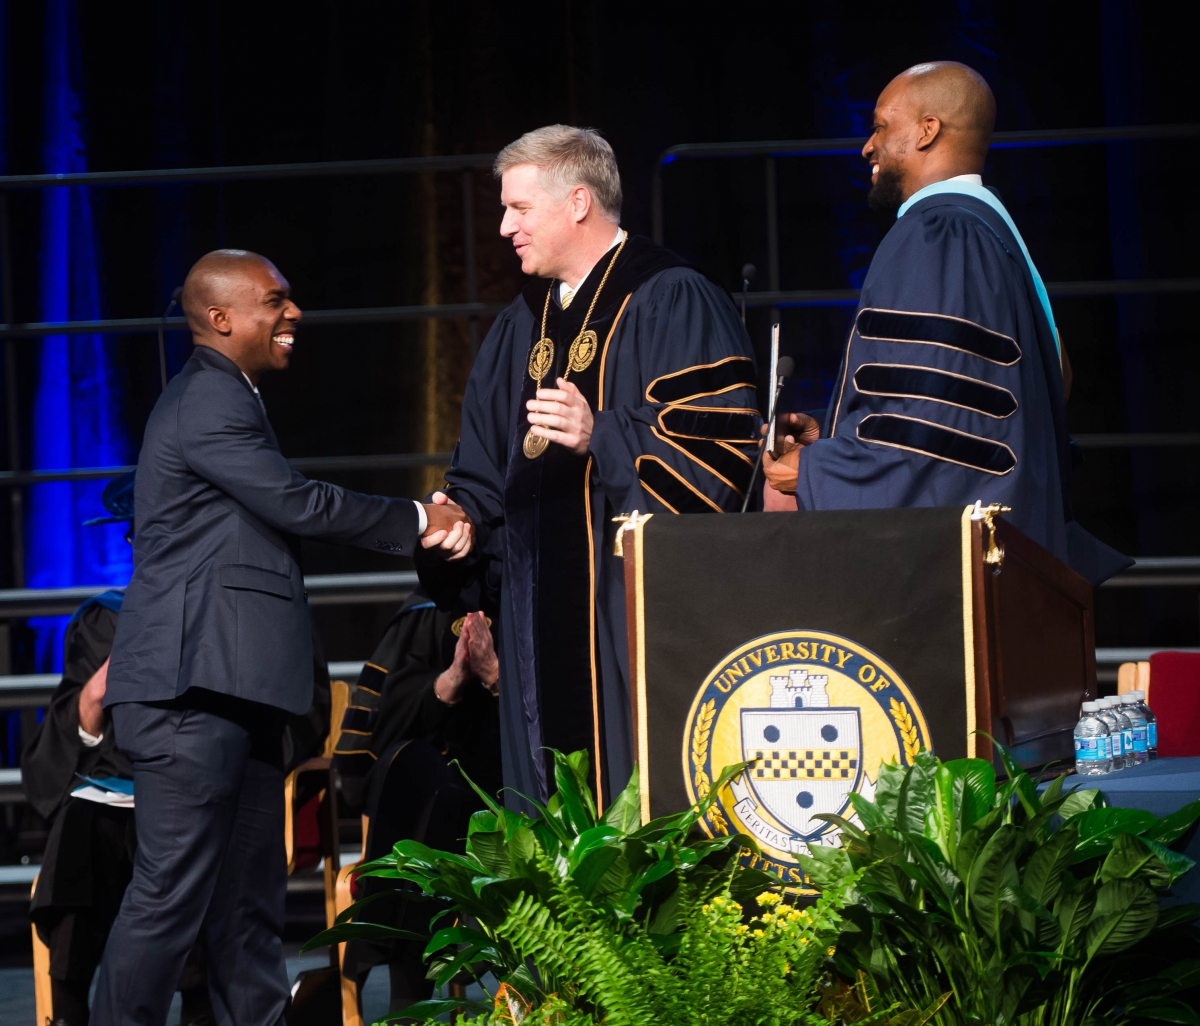 Robinson accepts the Omnicron Delta Kappa Senior of the Year Award from Chancellor Patrick Gallagher.